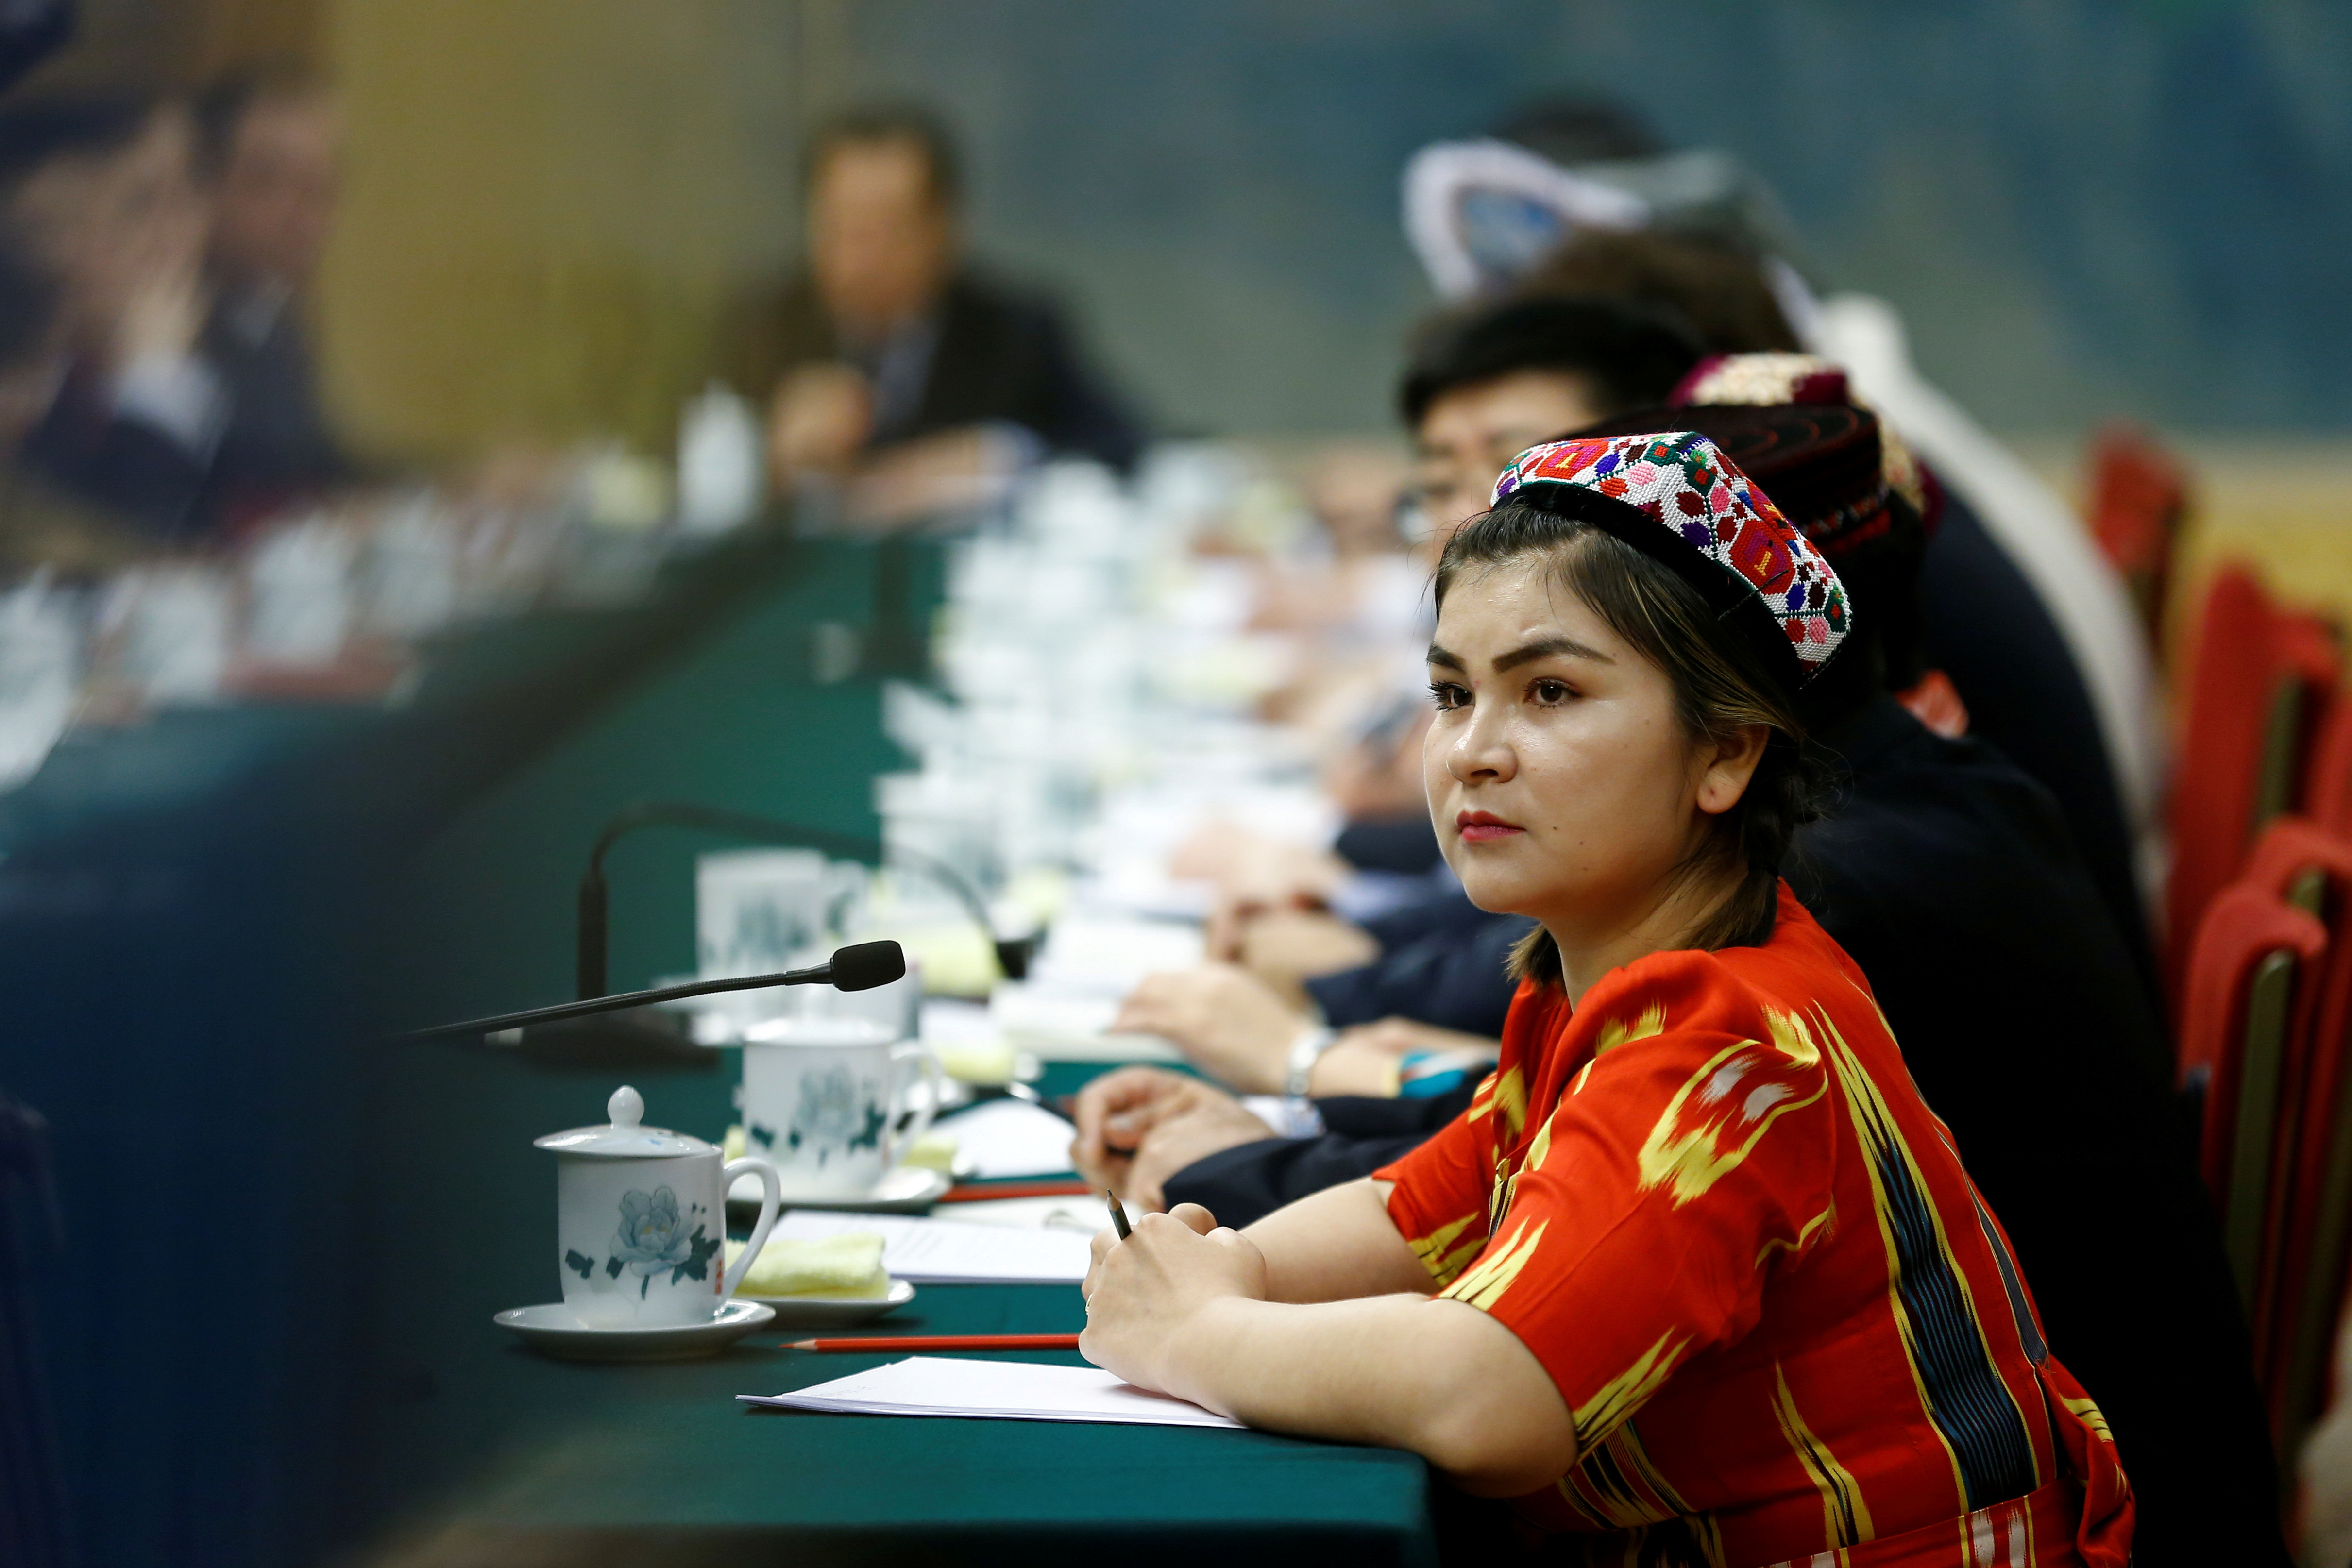 A delegate wearing a traditional costume attends a session of the Xinjiang Uyghur Autonomous Region on the sidelines of the National People's Congress (NPC) at the Great Hall of the People in Beijing, China, March 13, 2018.  REUTERS/Thomas Peter/File Photo